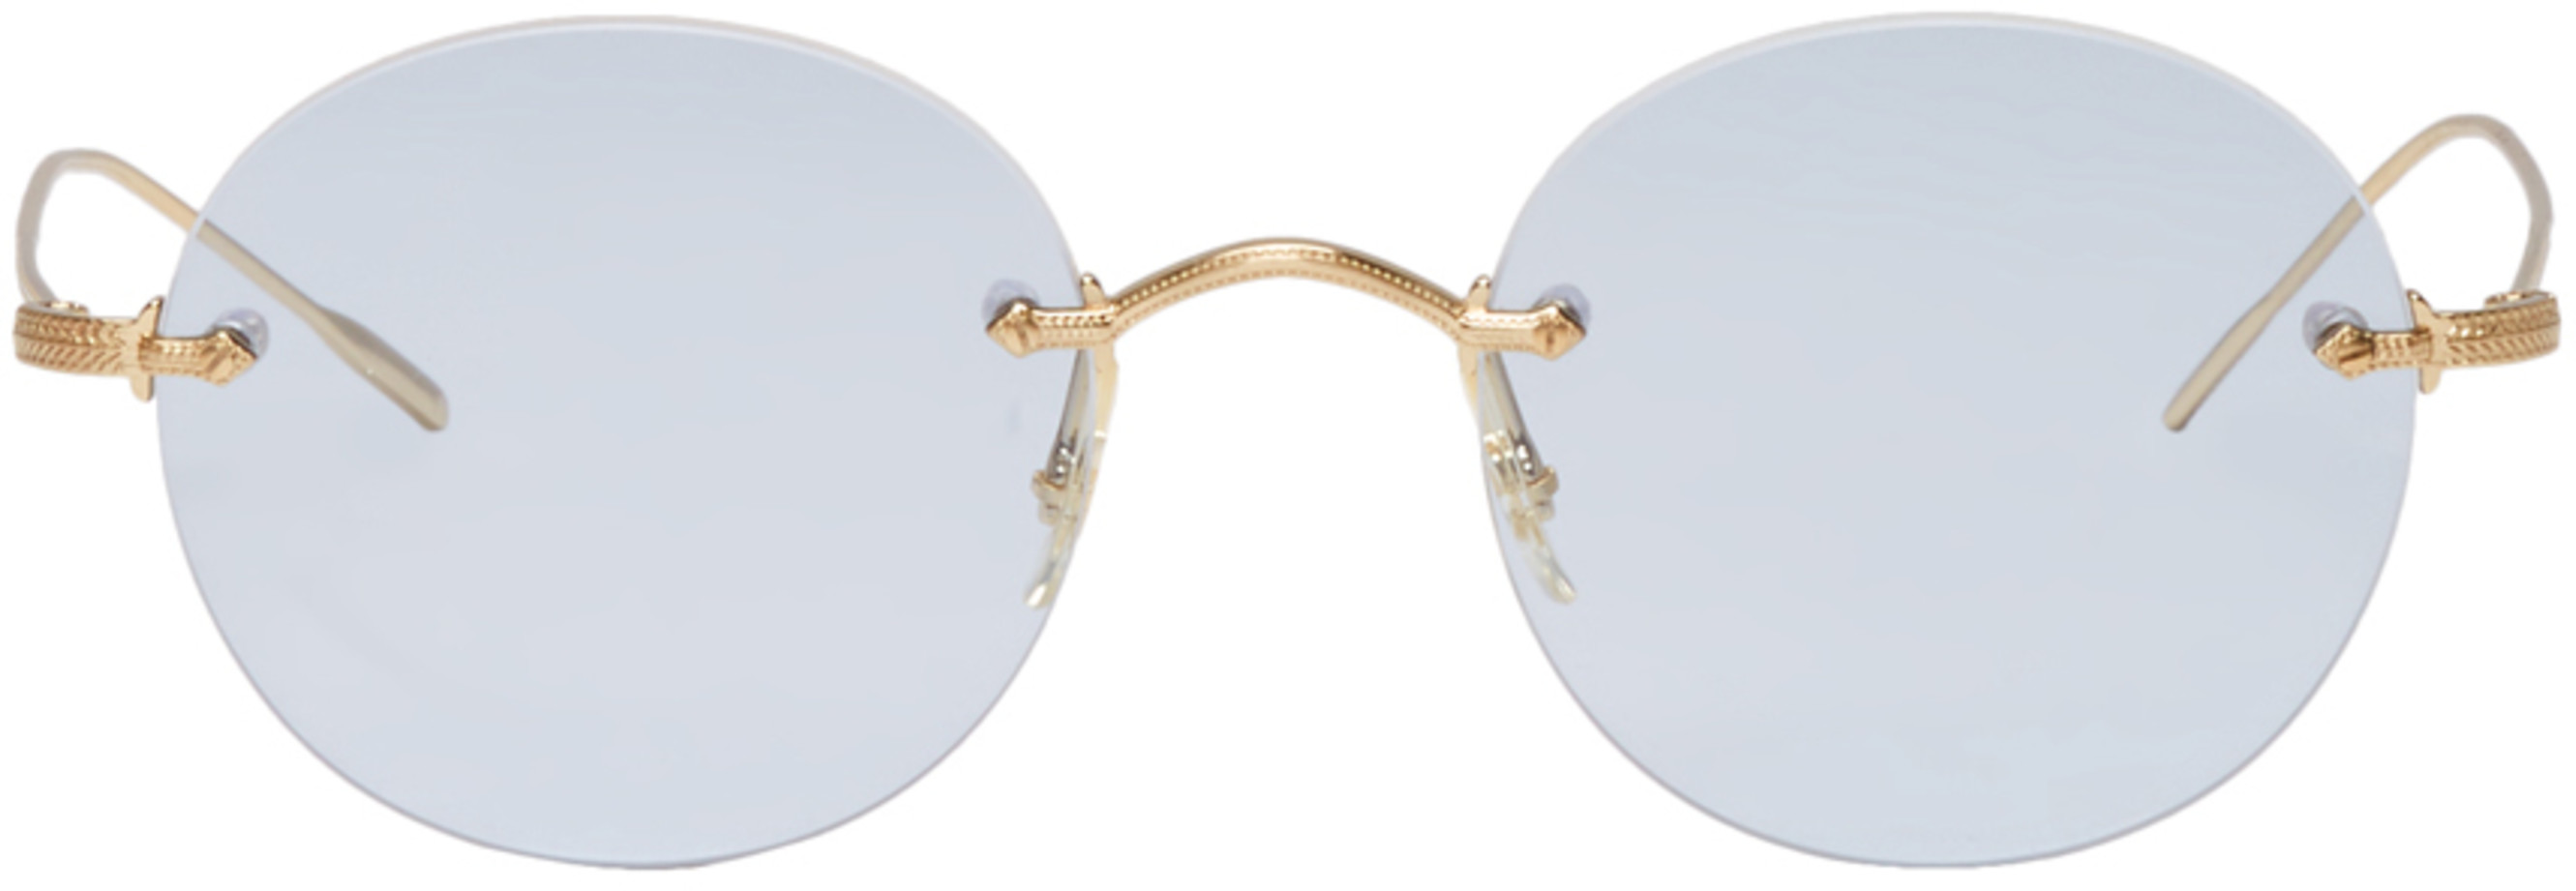 eed131fd59 Oliver Peoples for Men SS19 Collection